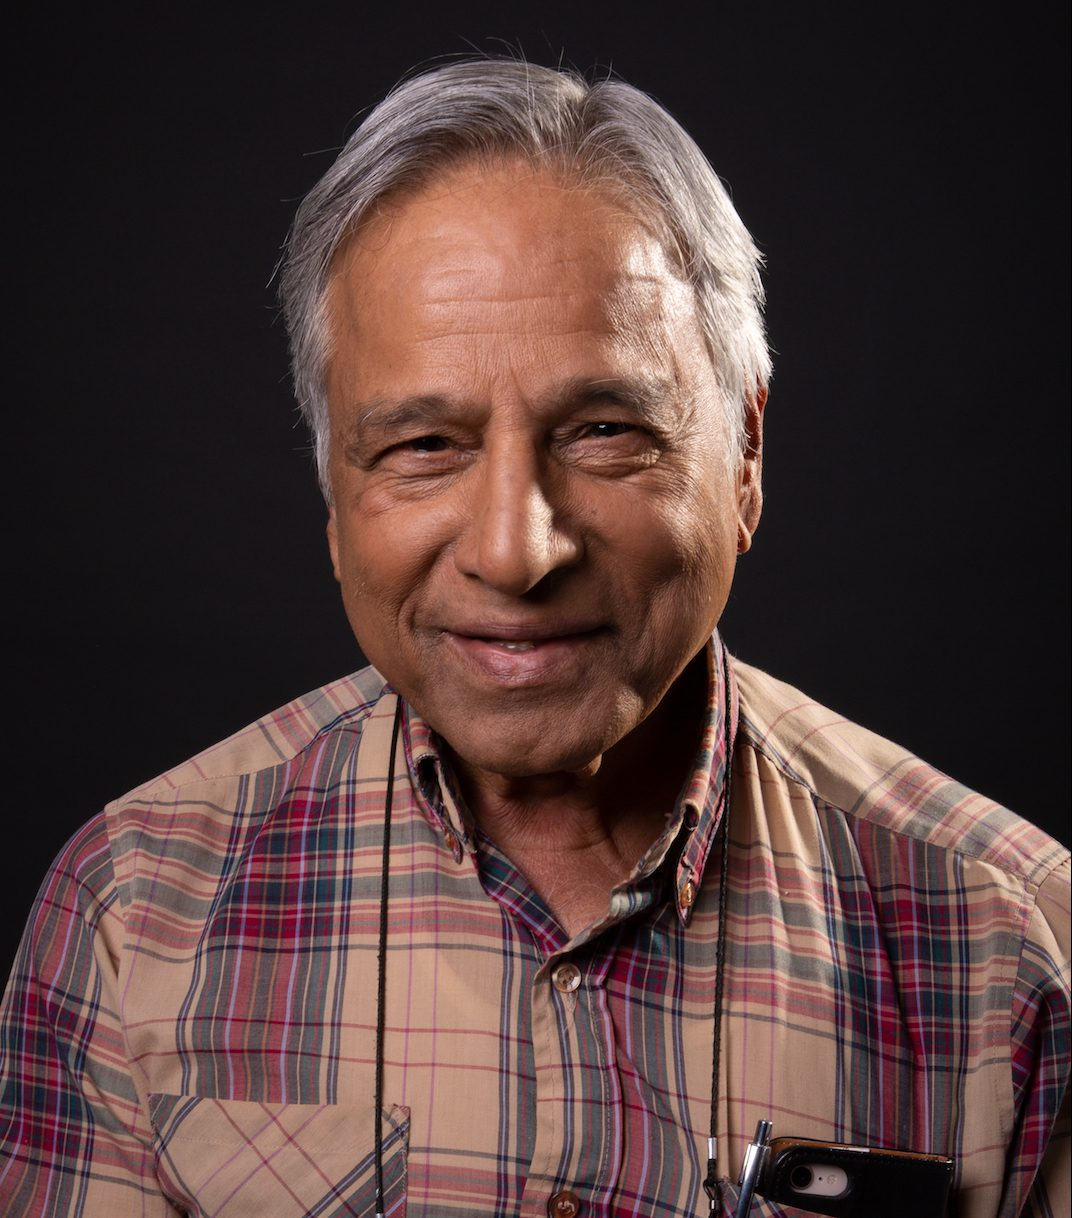 Nazar: Smiling at camera, with black background. Wearing a patterned dress shirt that is brown, maroon and dark blue, picture is up to just below the shoulders.